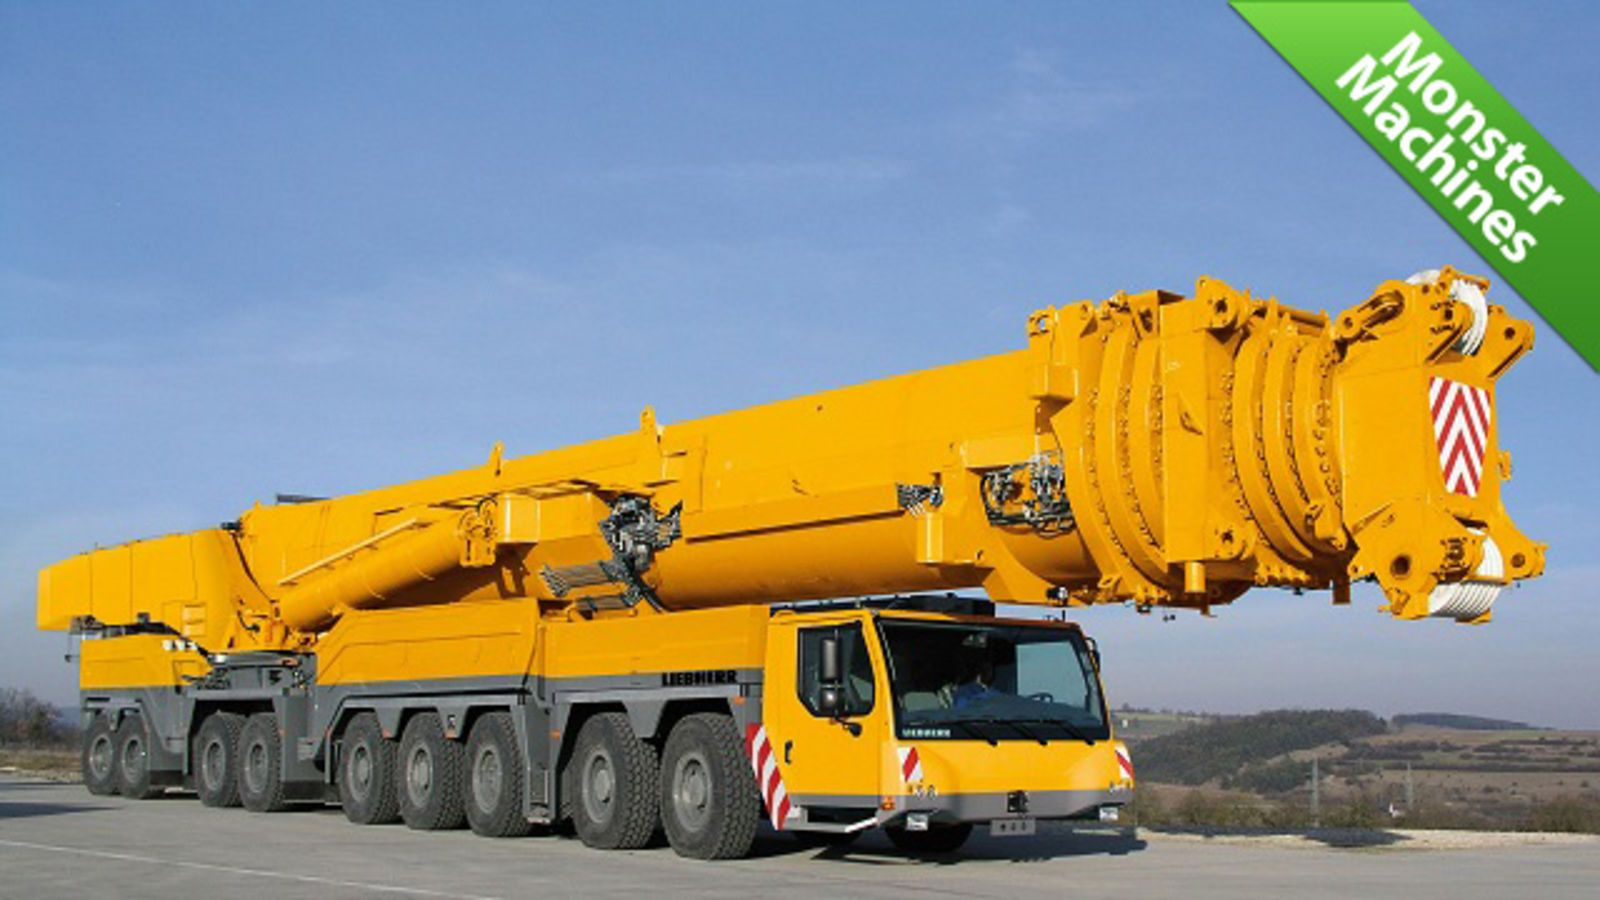 World S Tallest Mobile Crane Is Also World S Strongest With